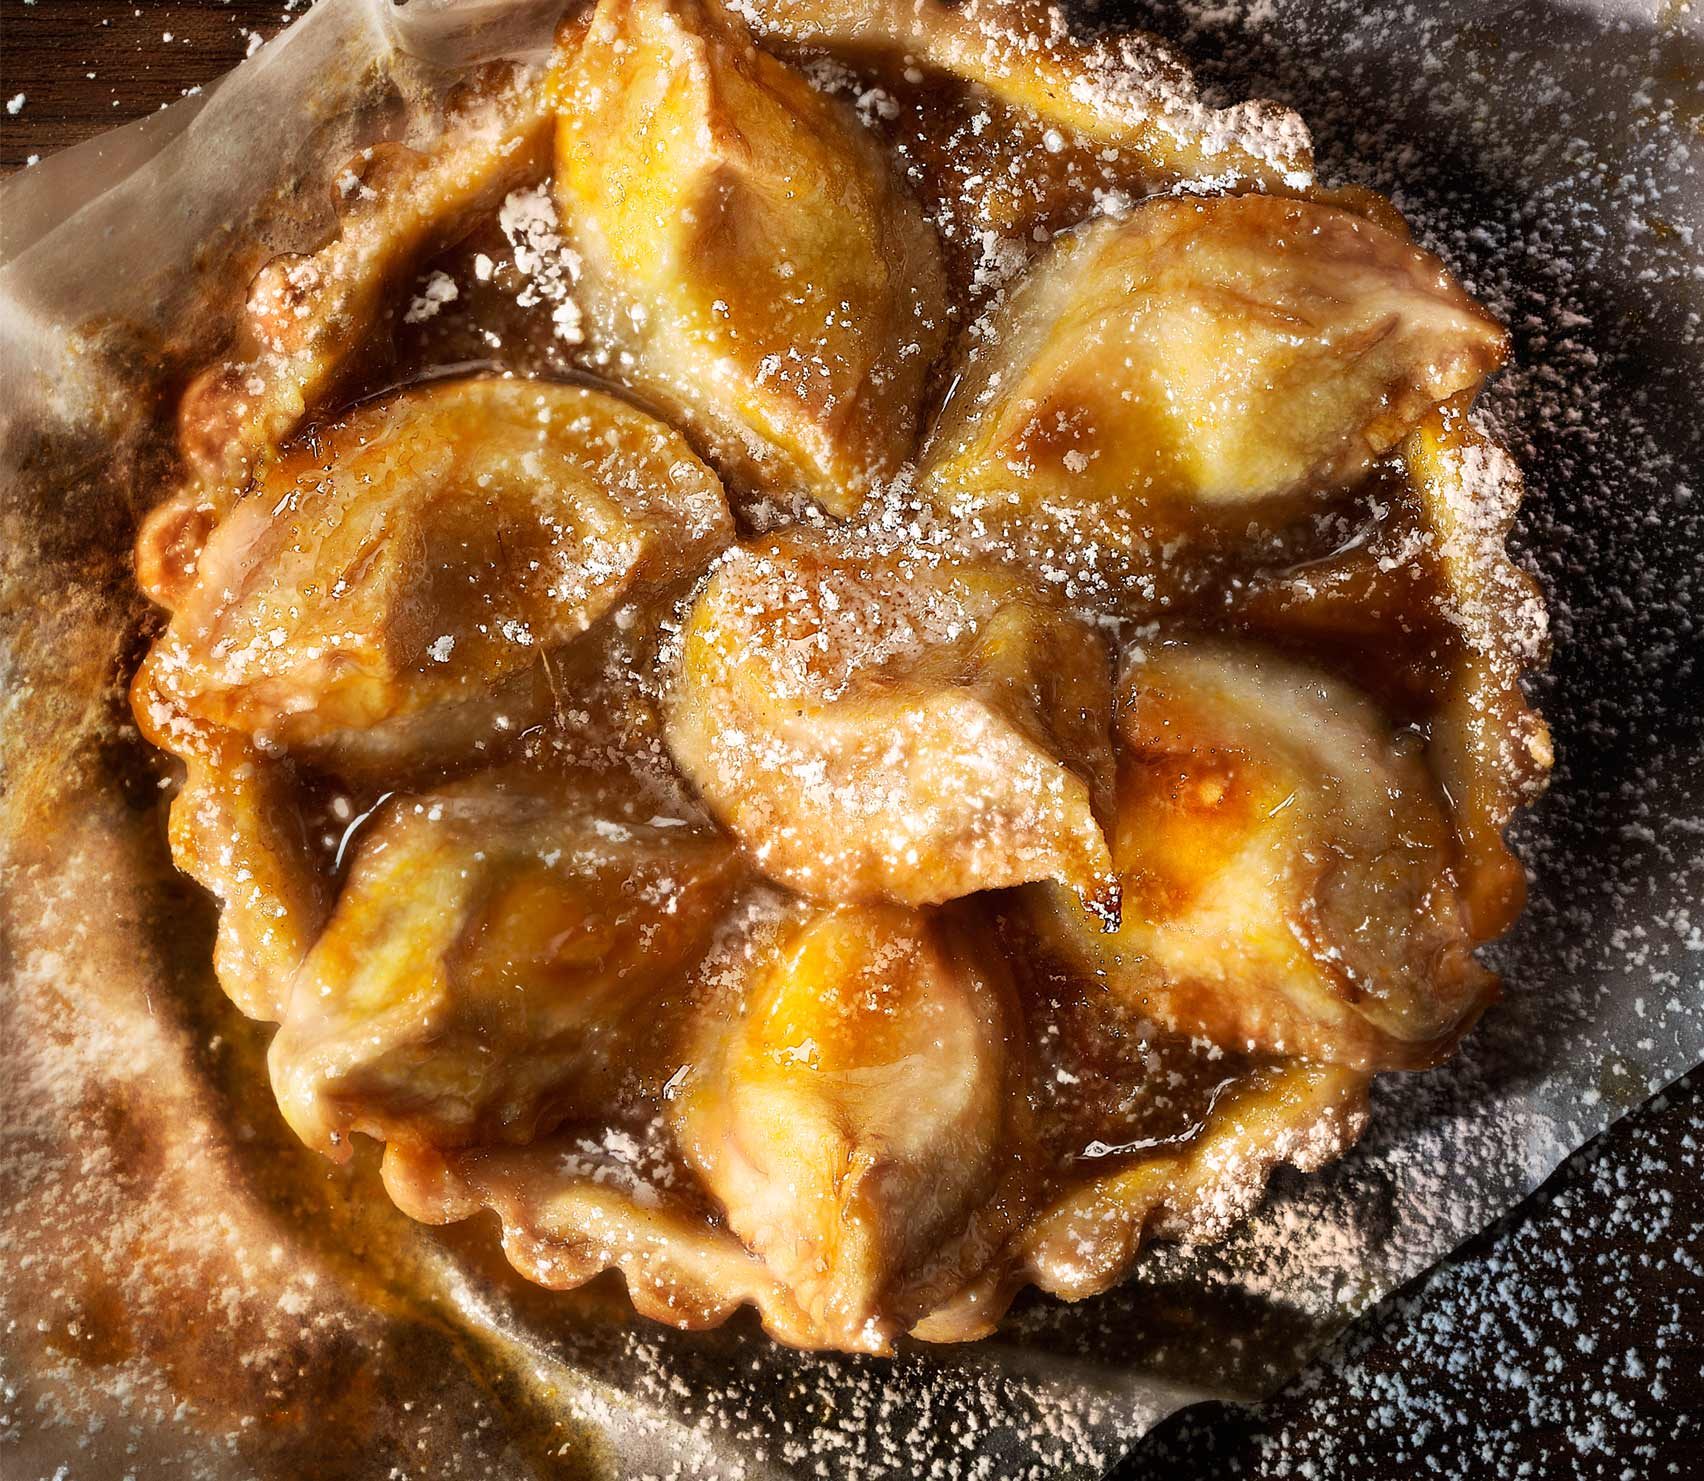 Glasshouse Assignment - David Bishop - Food Photography - Pear Tart